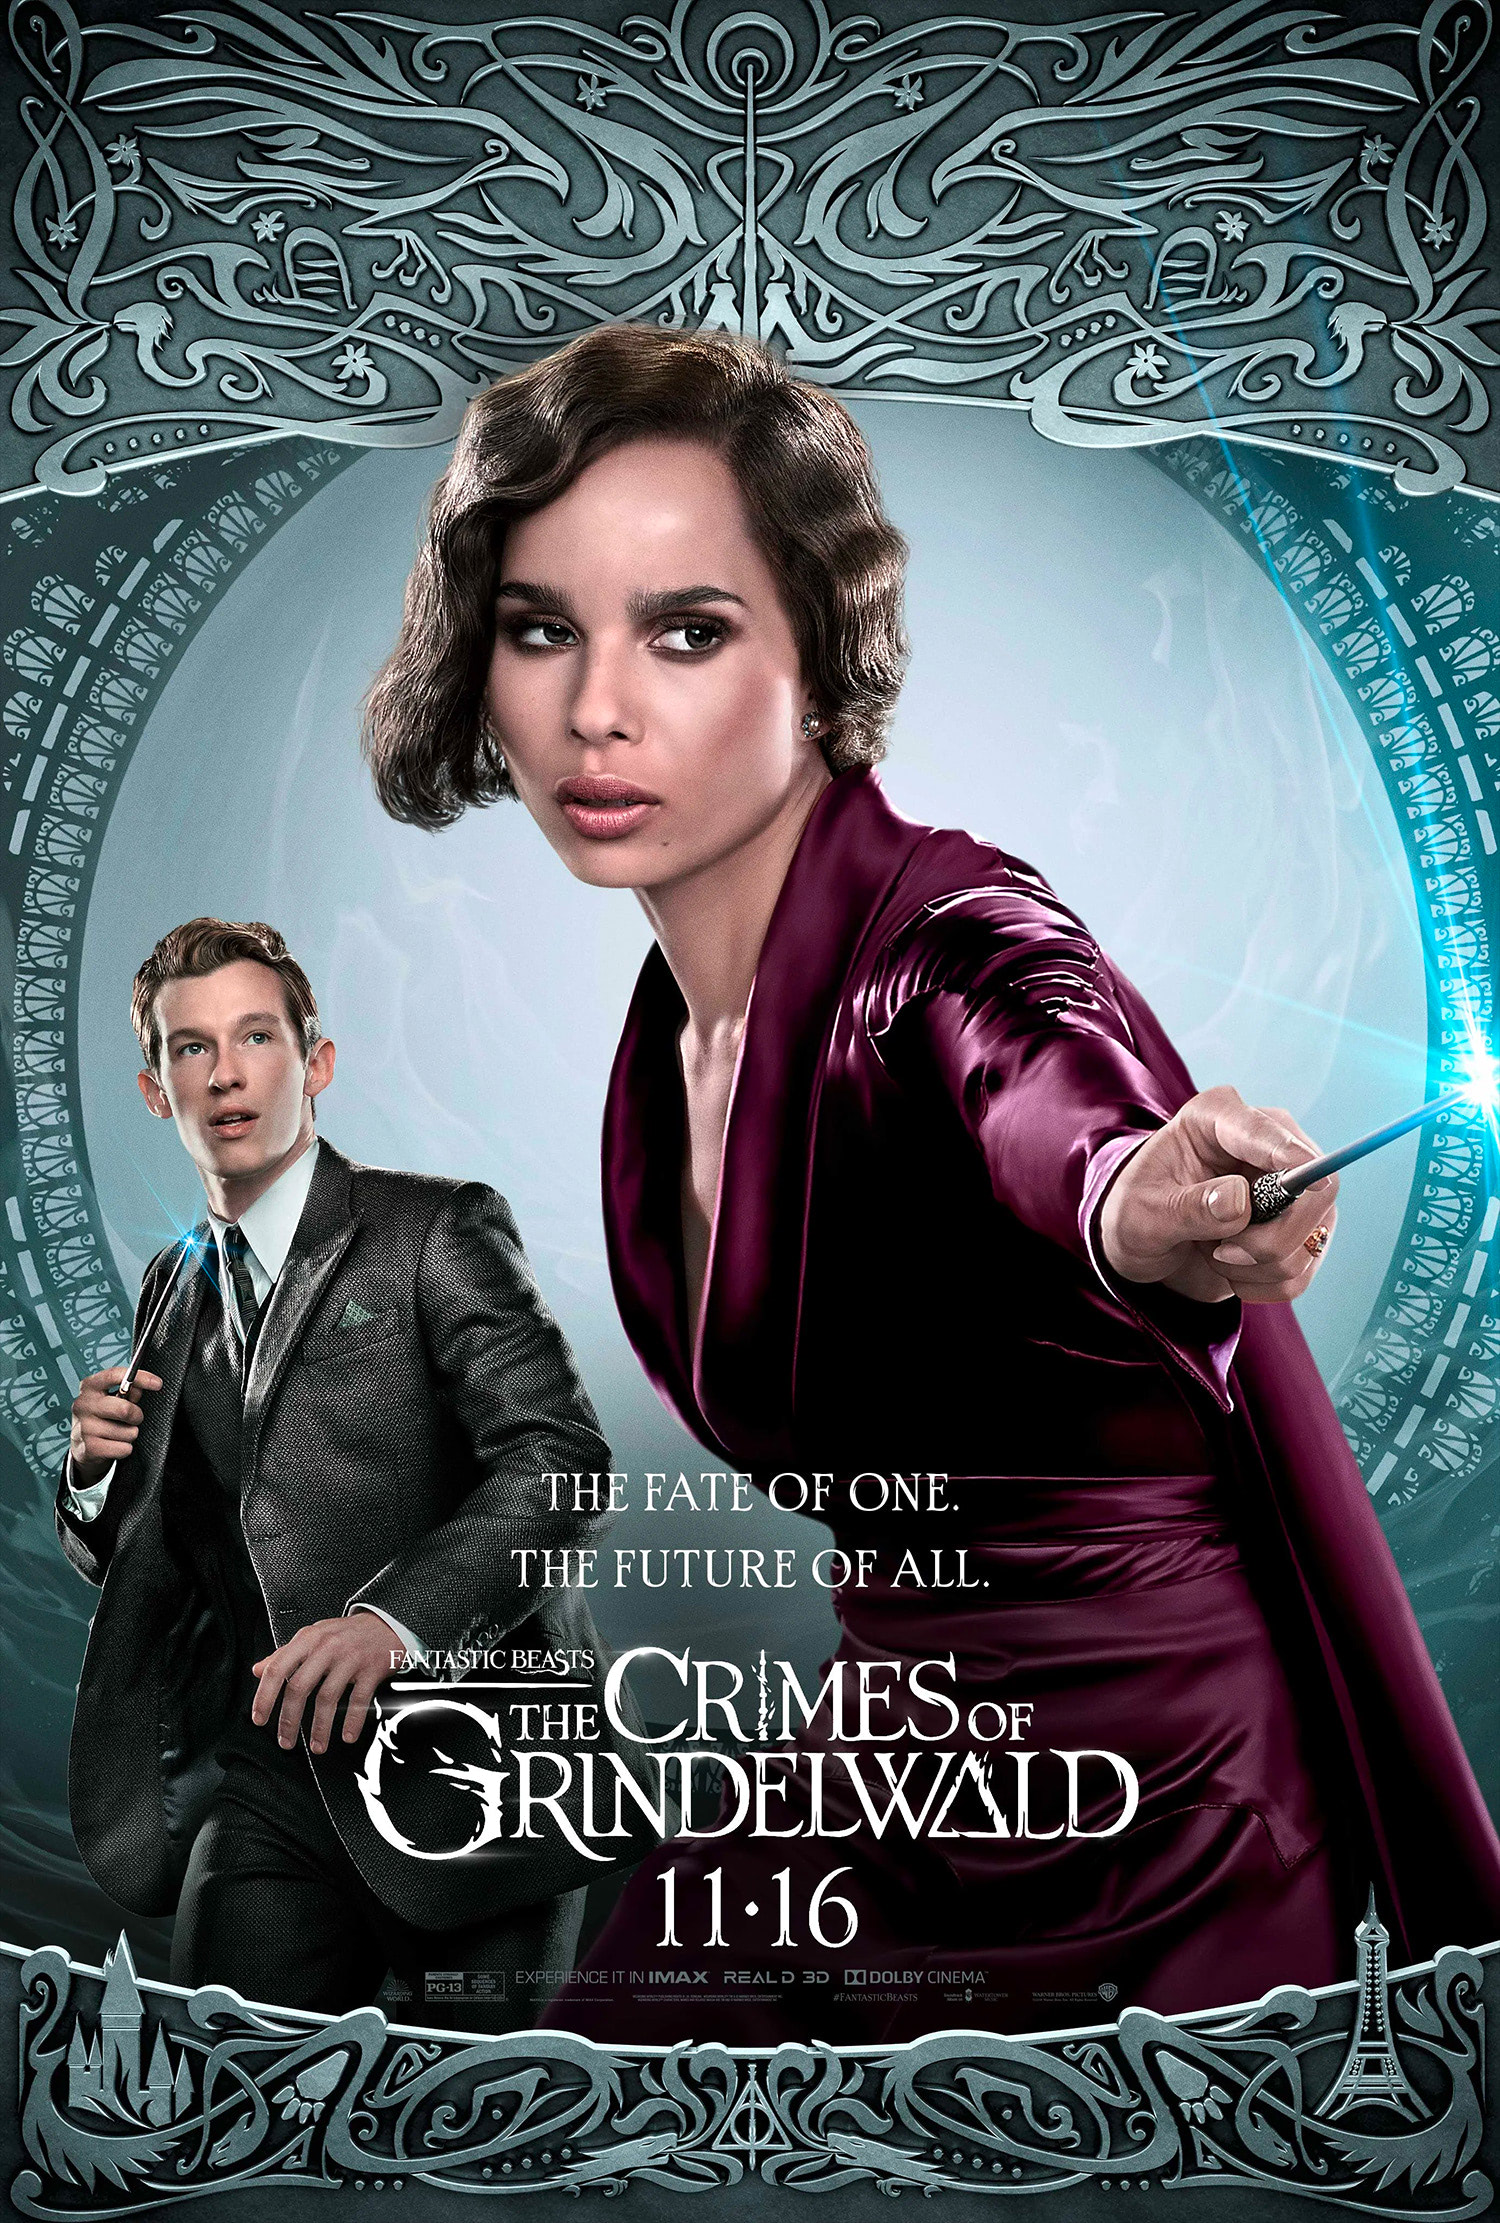 'Crimes of Grindelwald' Leta Lestrange poster #2